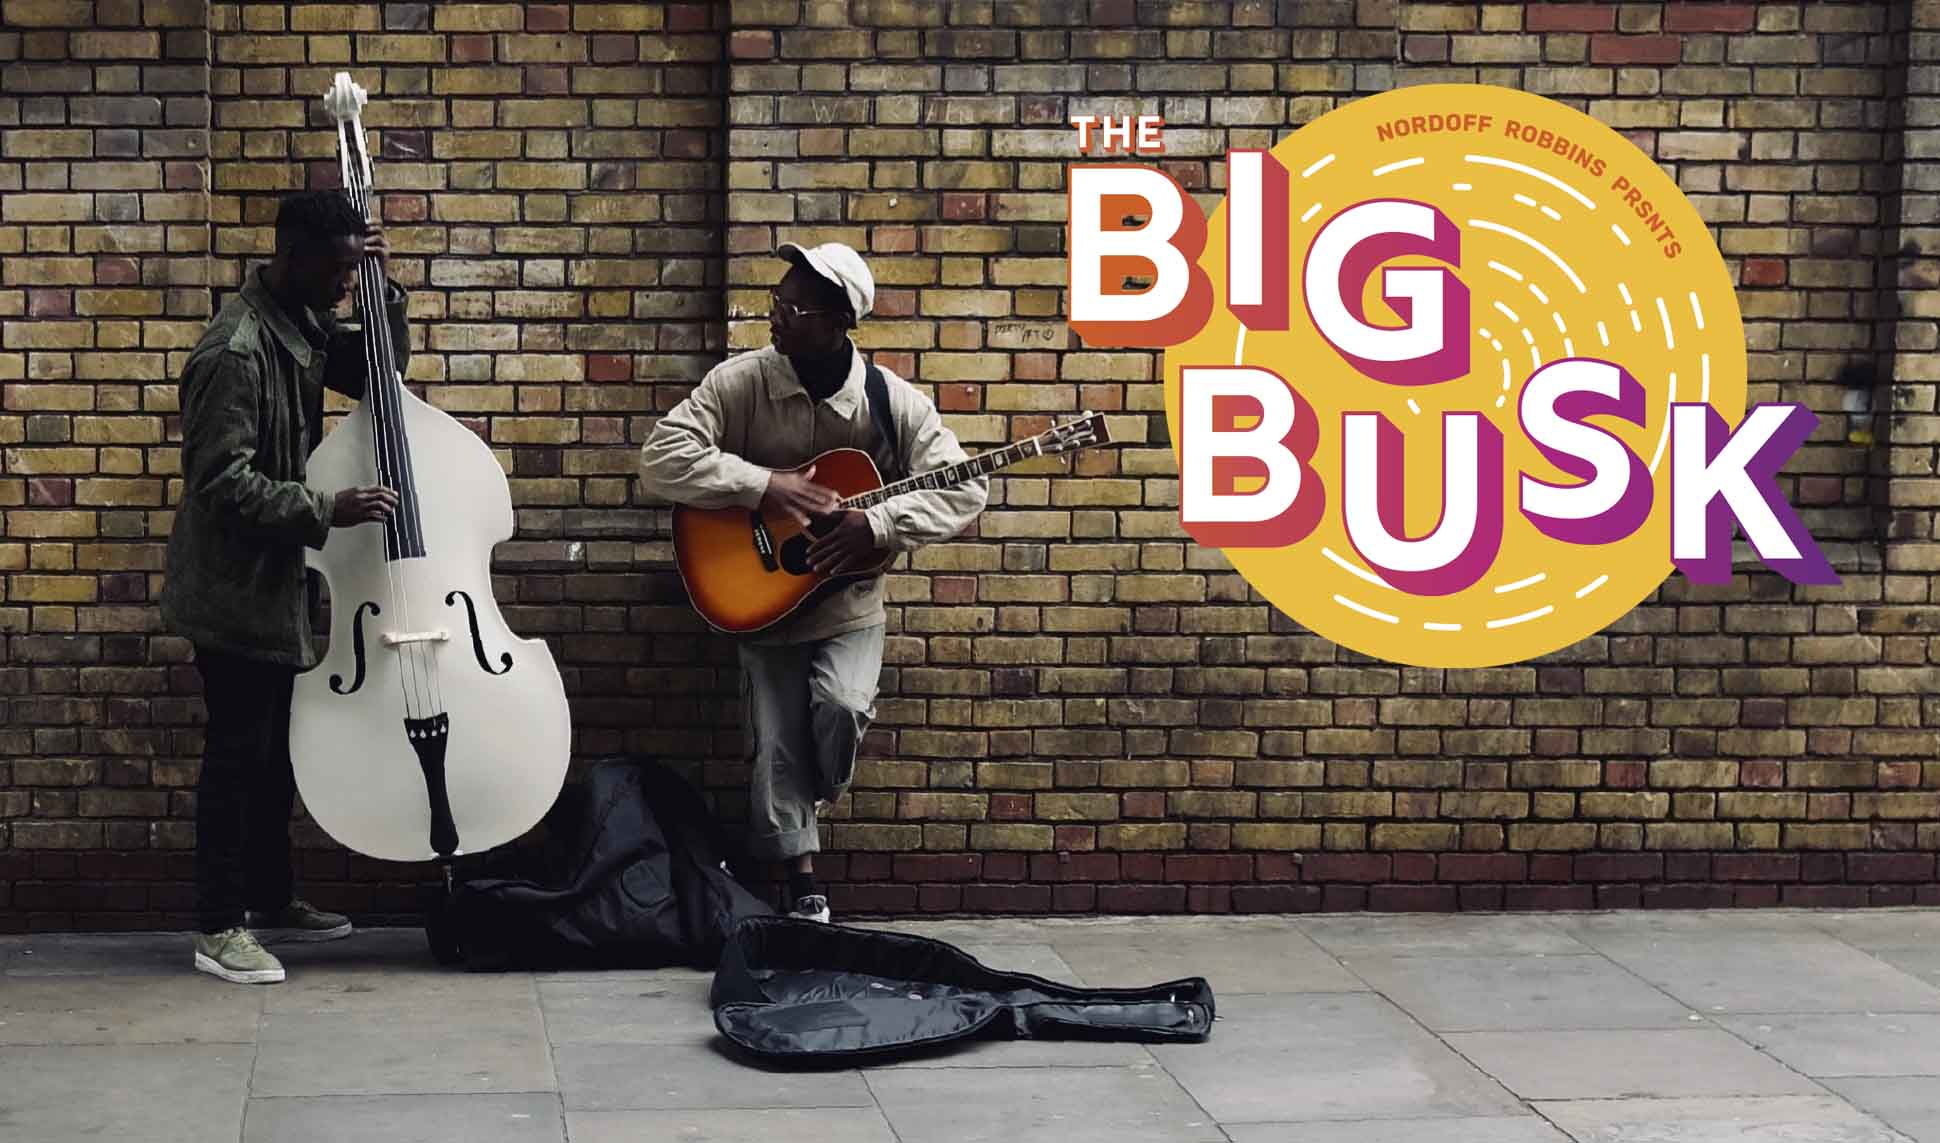 The Big Busk branding with two musicians busking on the street